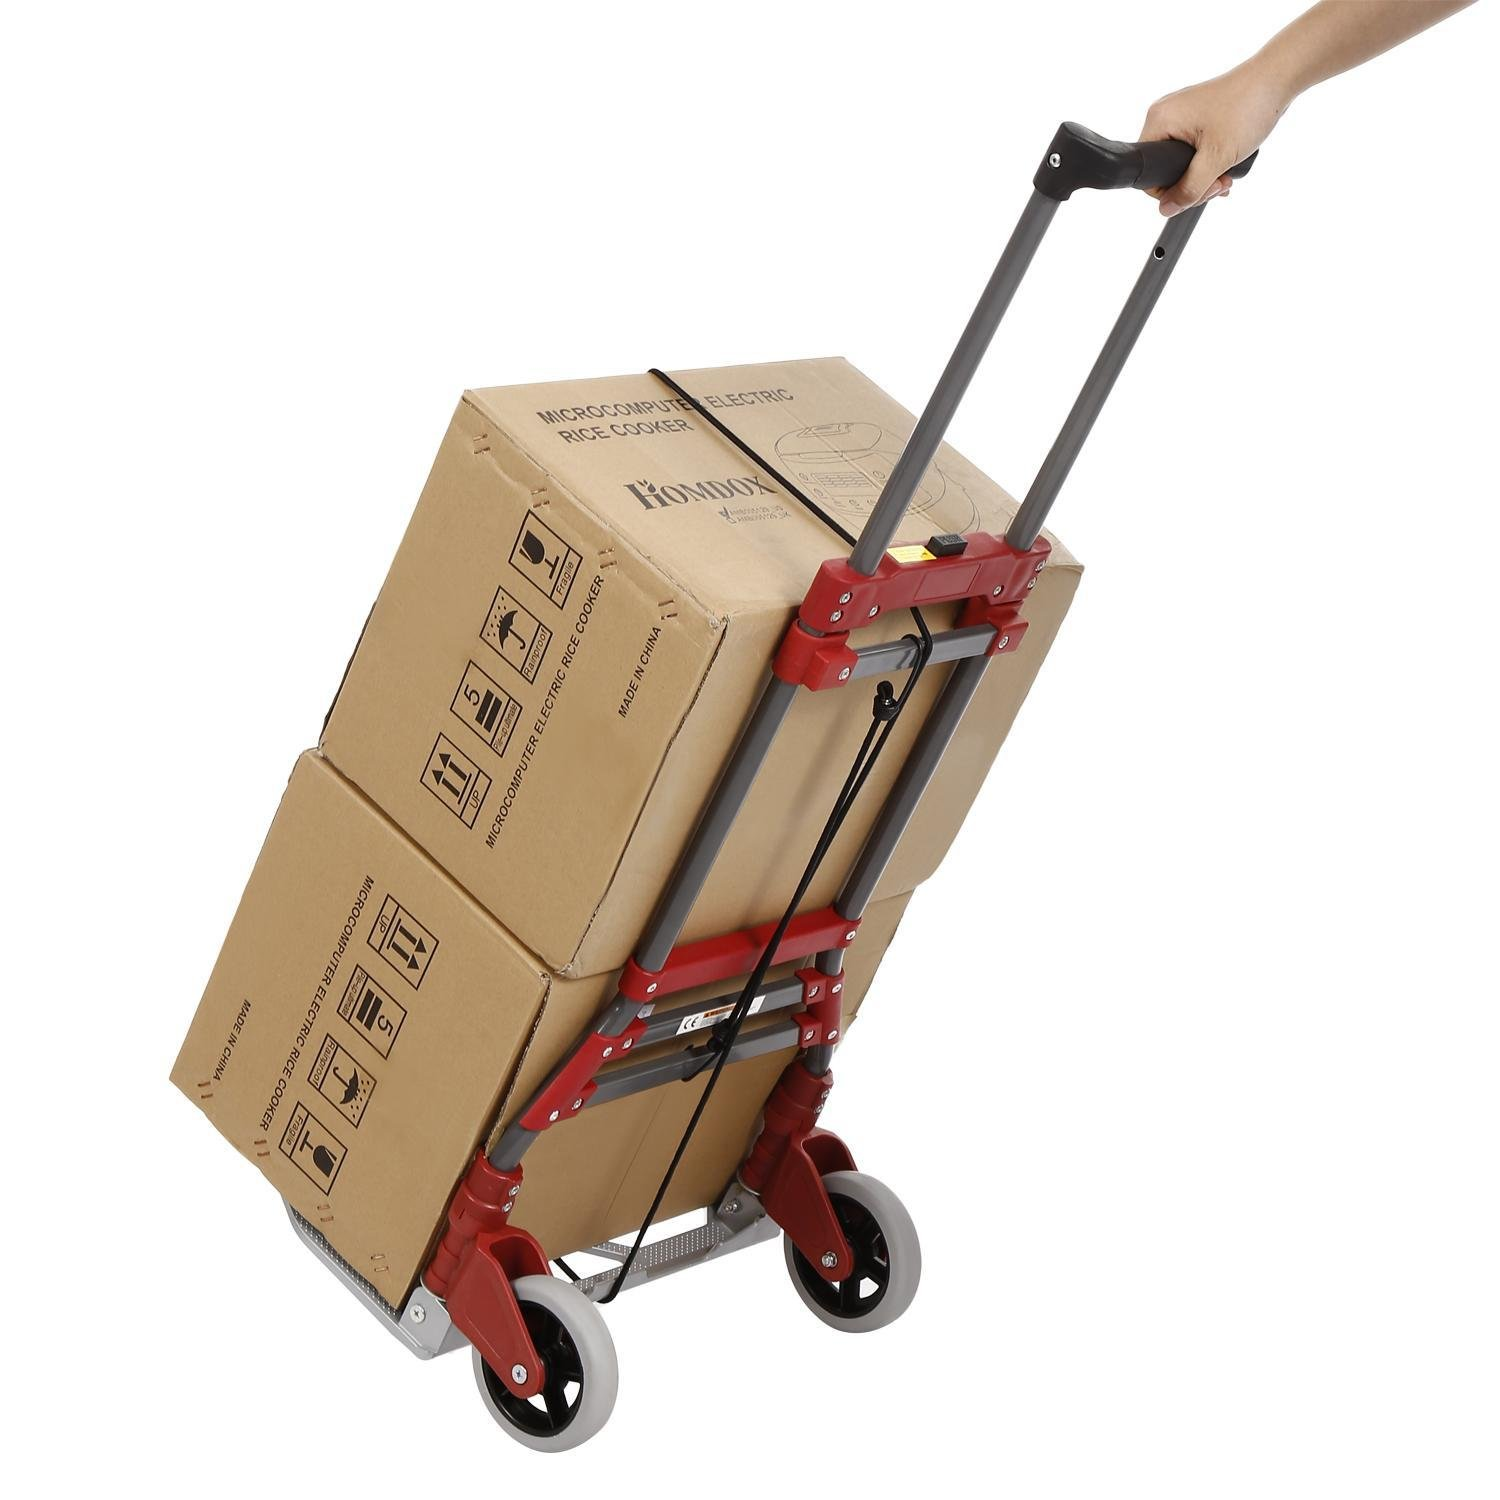 US Stock Pesters Folding Hand Cart Portable Labor Saving Shopping Dolly Cart for Personal Auto Moving and Office Use